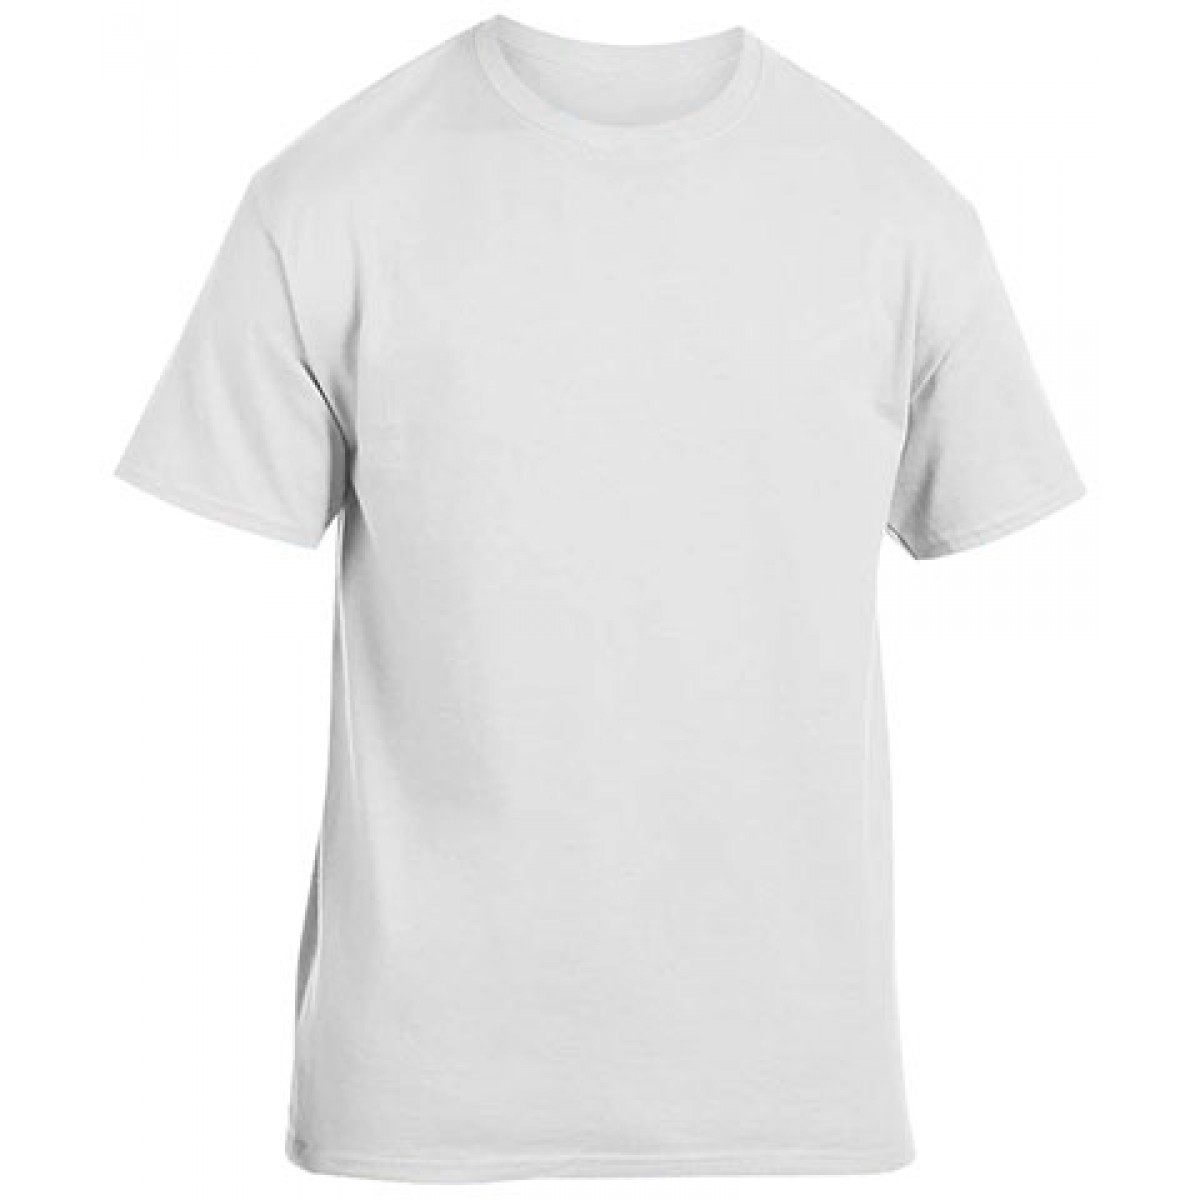 Cotton Short Sleeve T-Shirt-White-YM